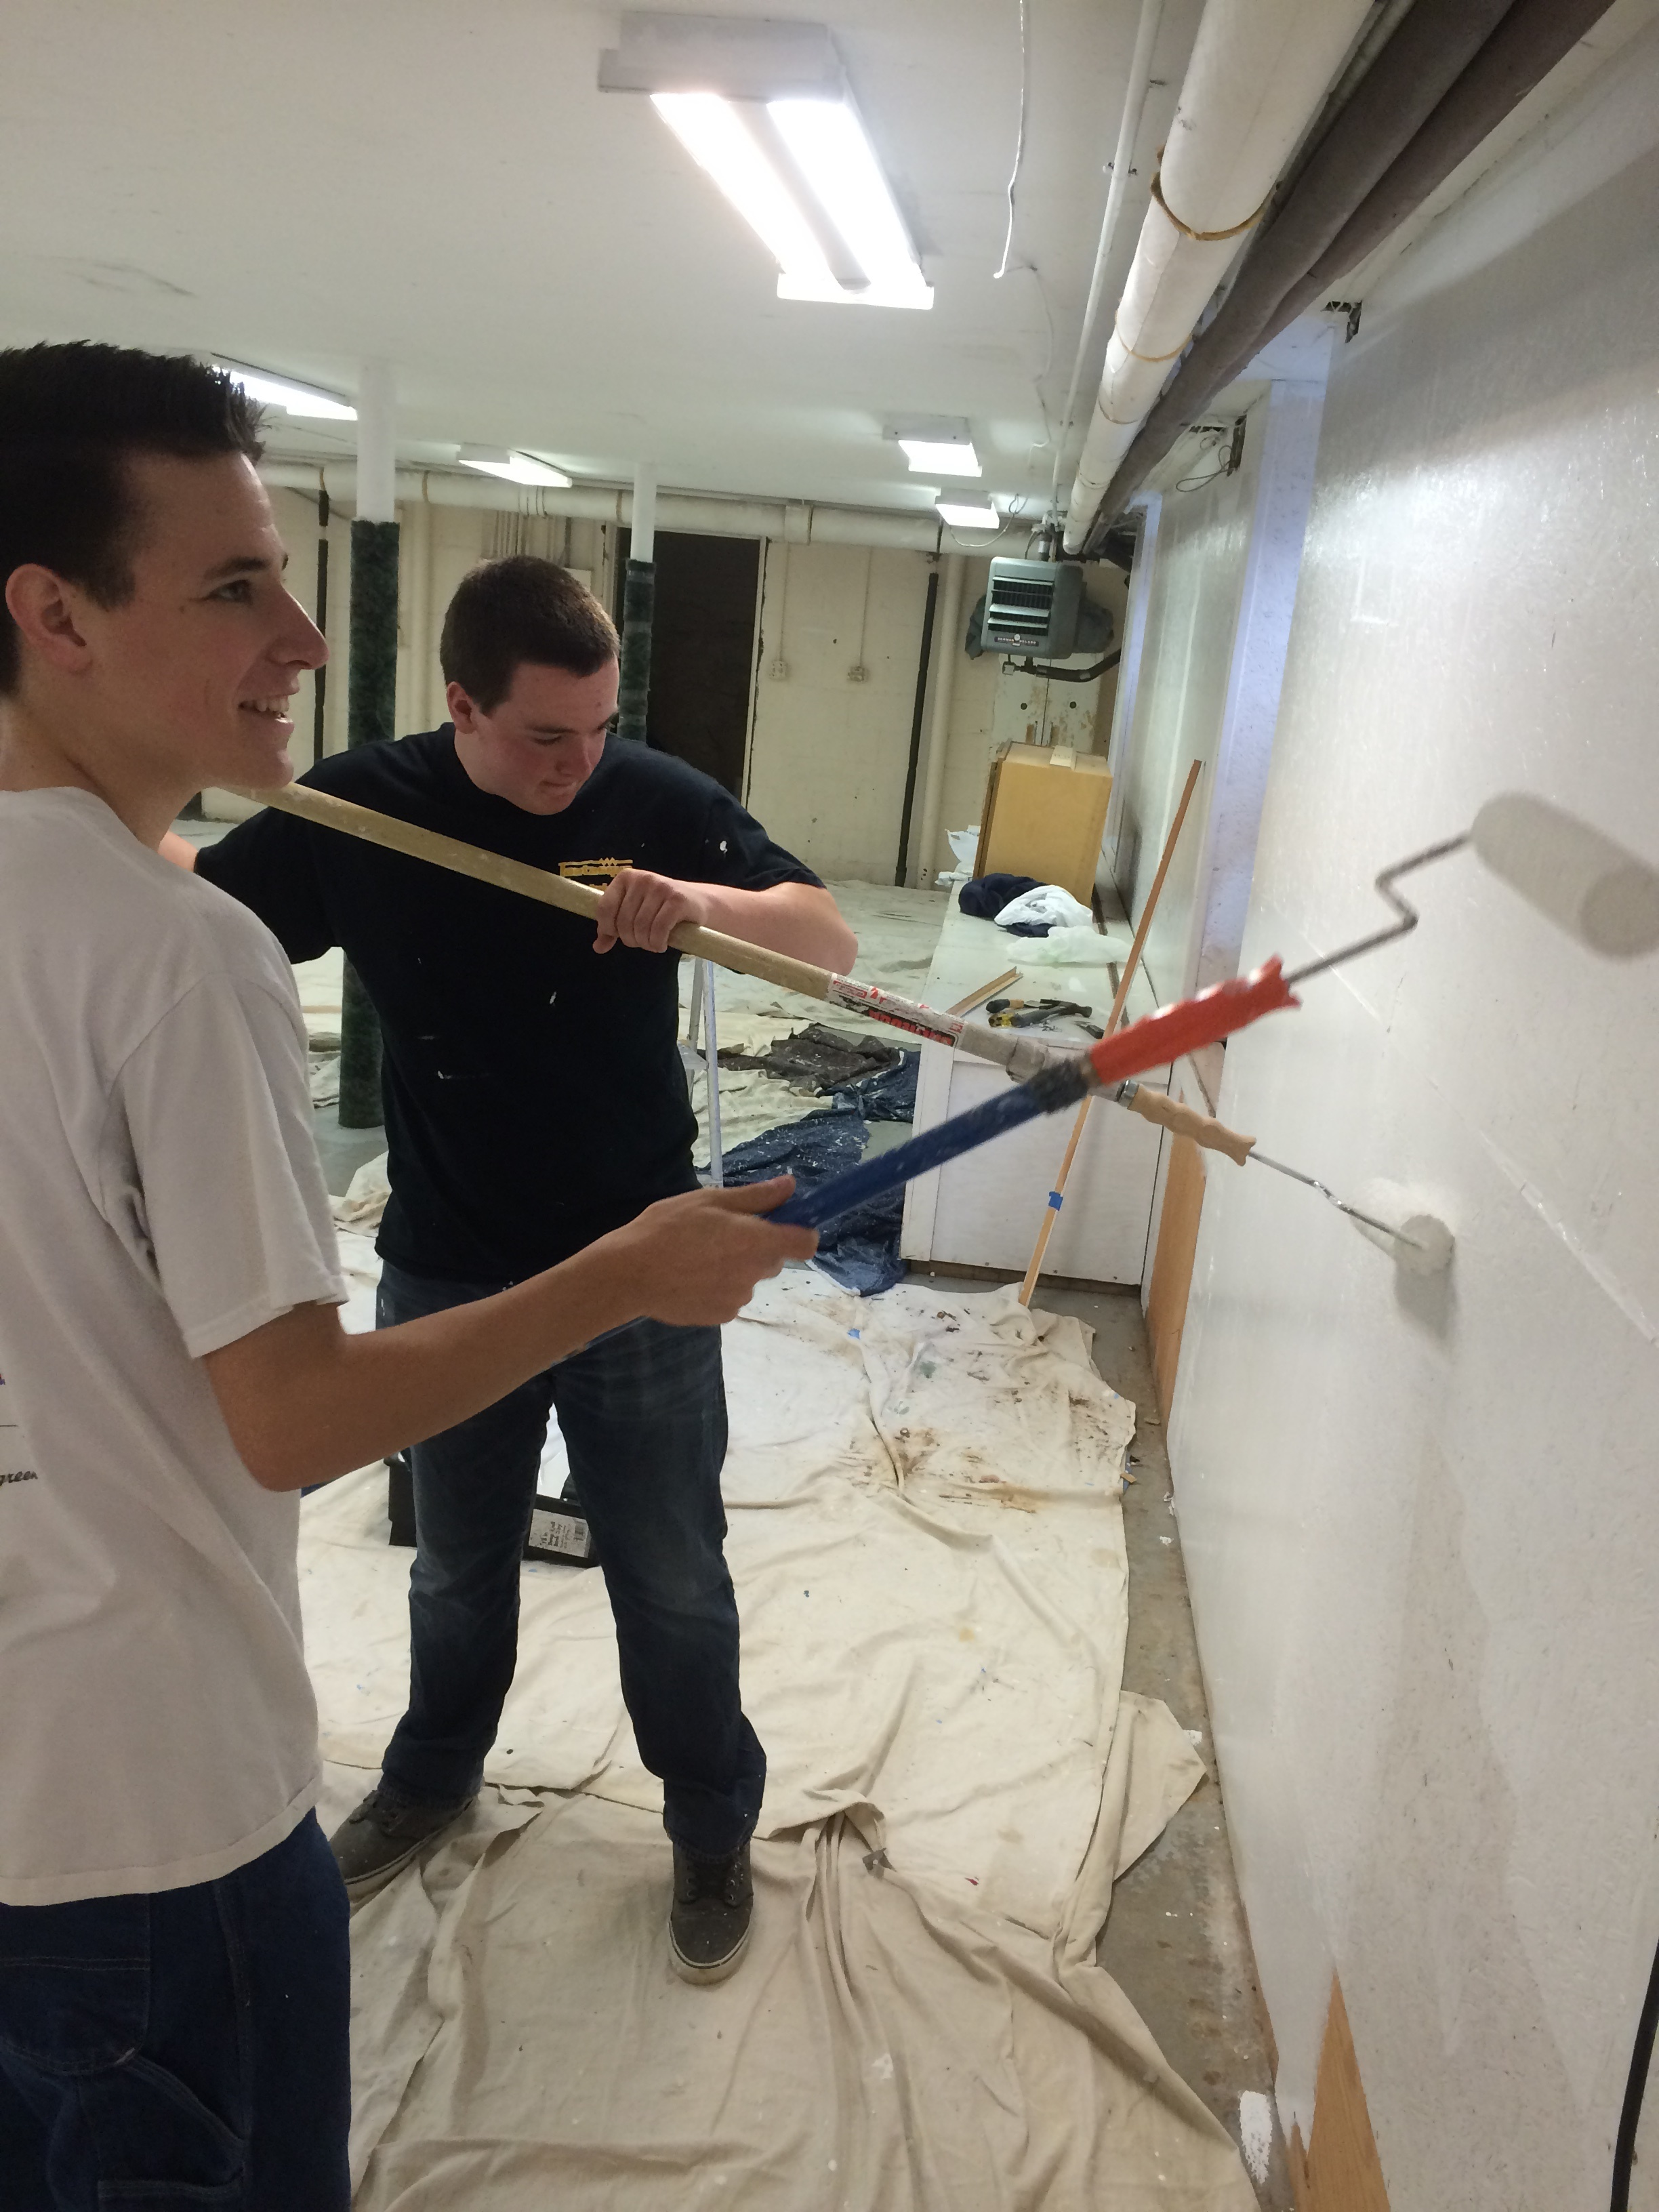 Hitting the wall: Jakob Shea and Tyler Hellyar tackle the walls with enthusiasm and care.